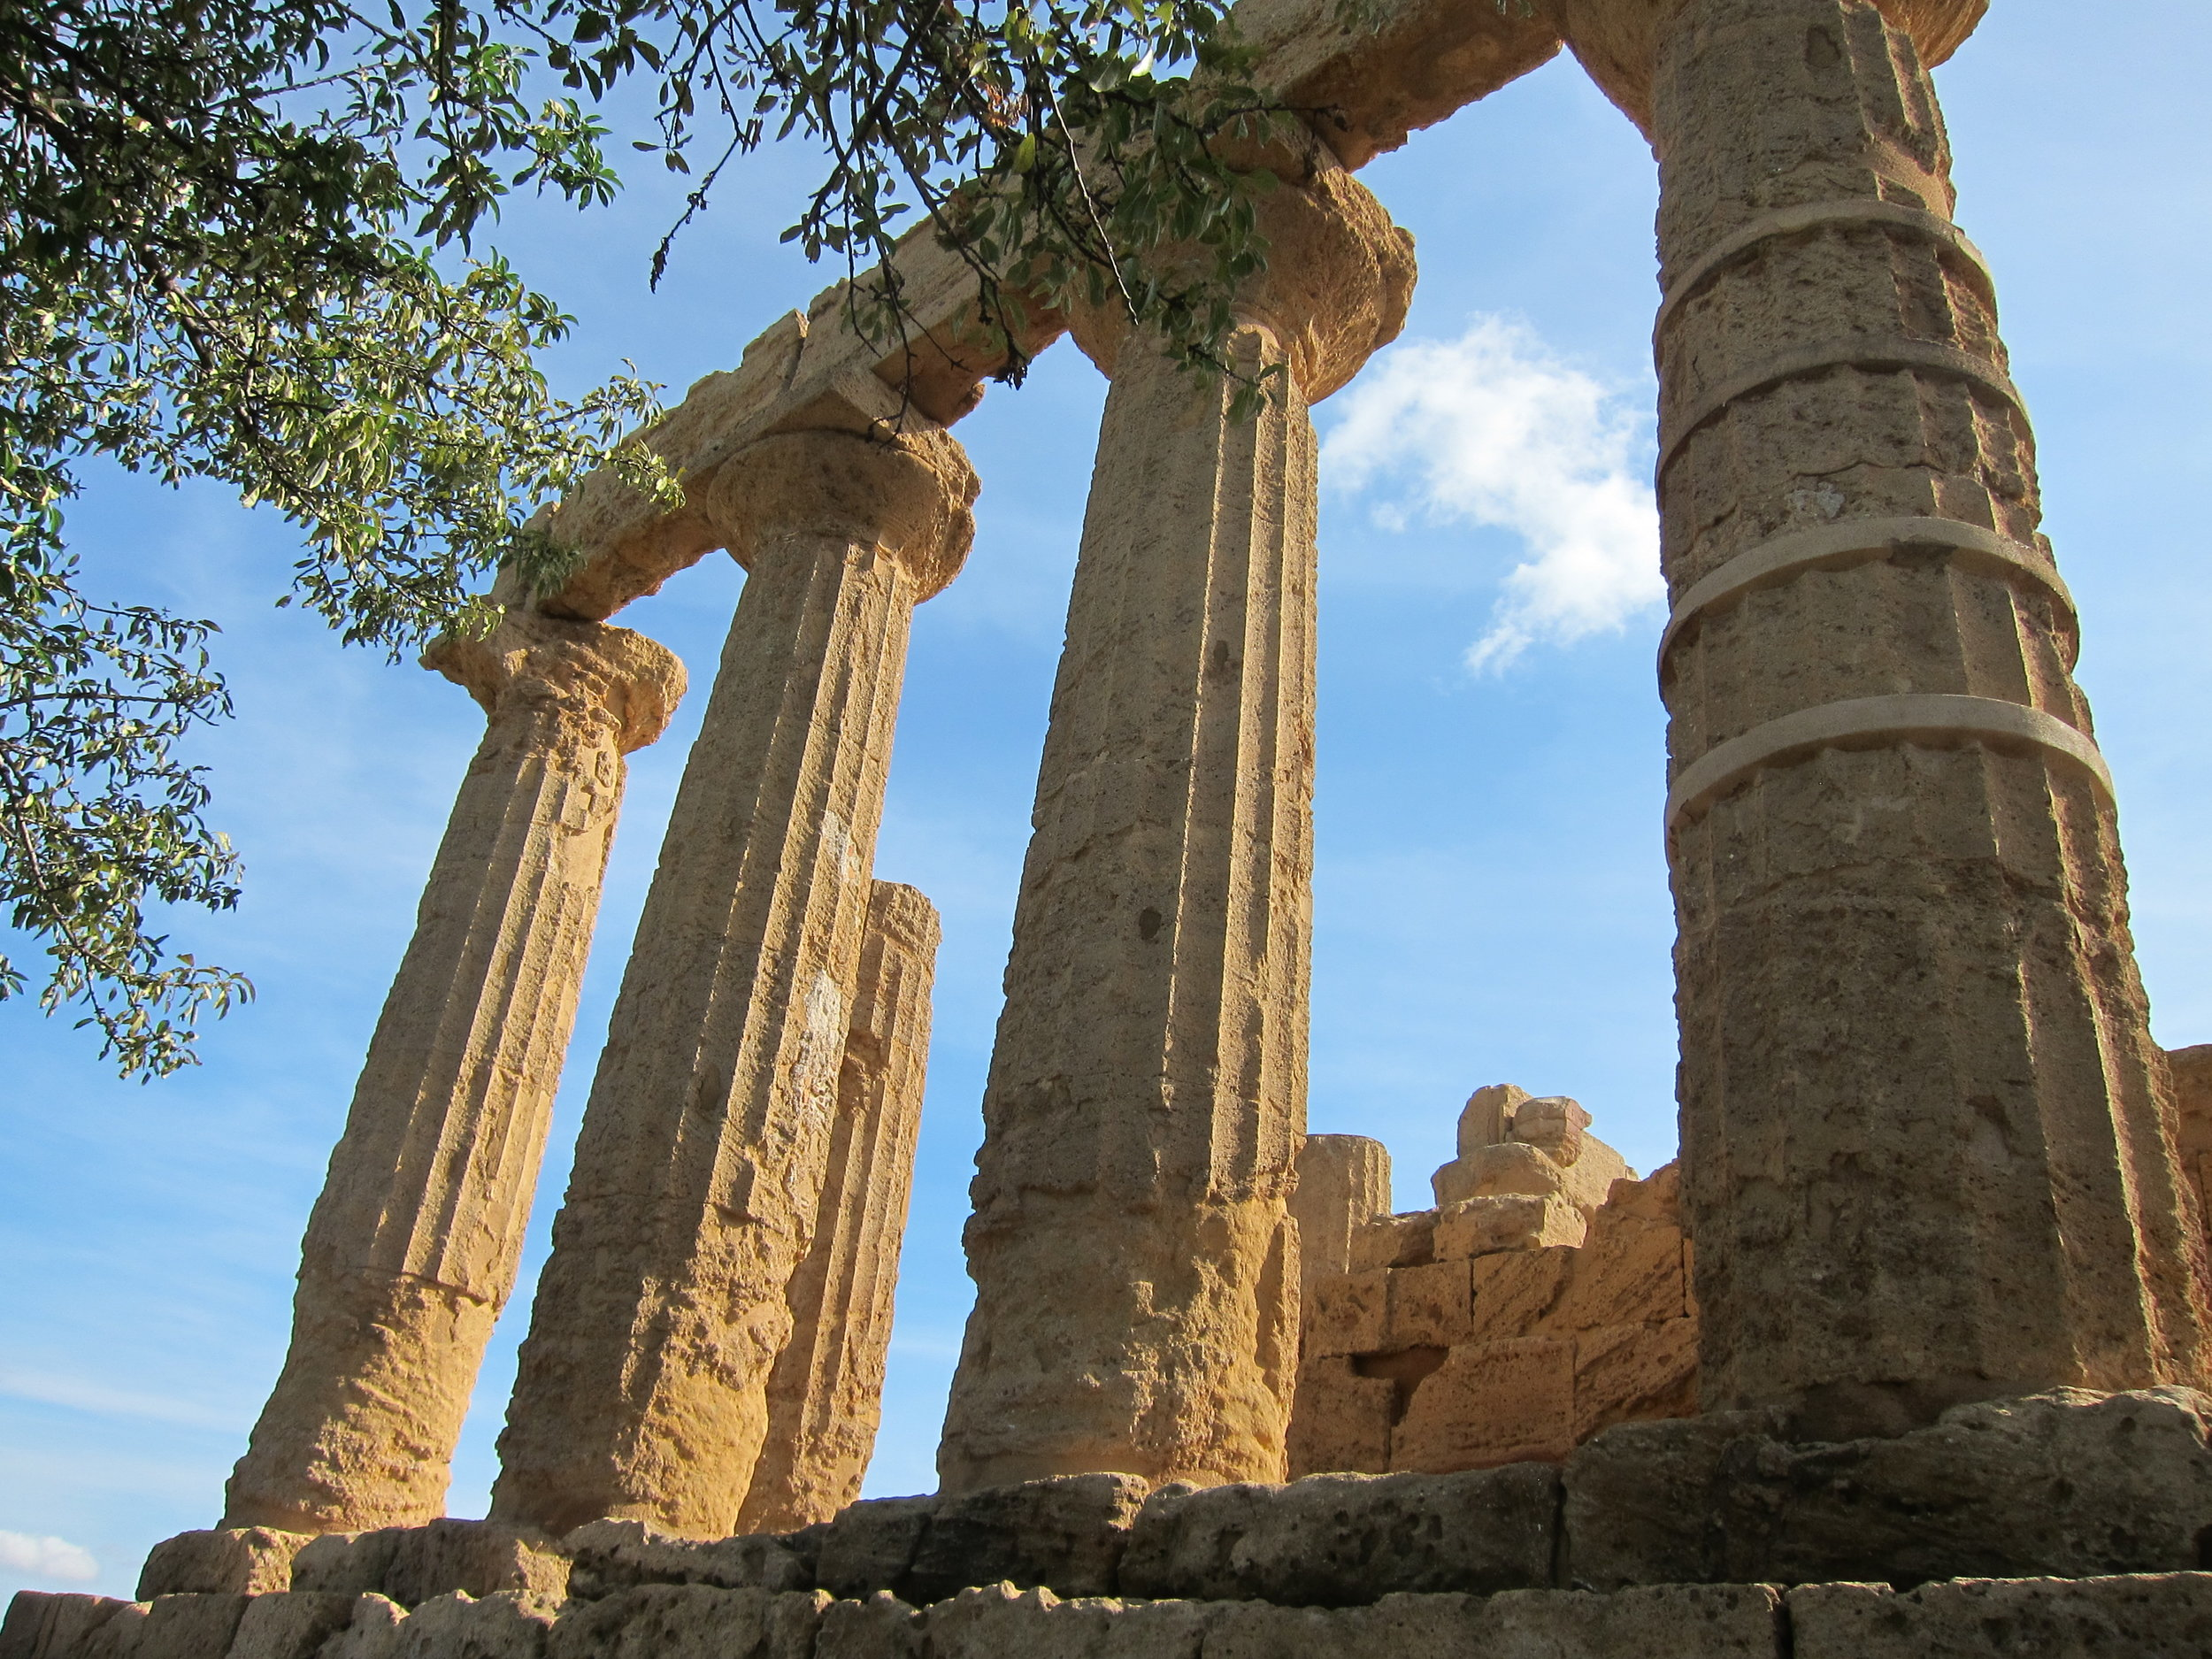 Valle dei Templi (Temple valley) at Agrigento